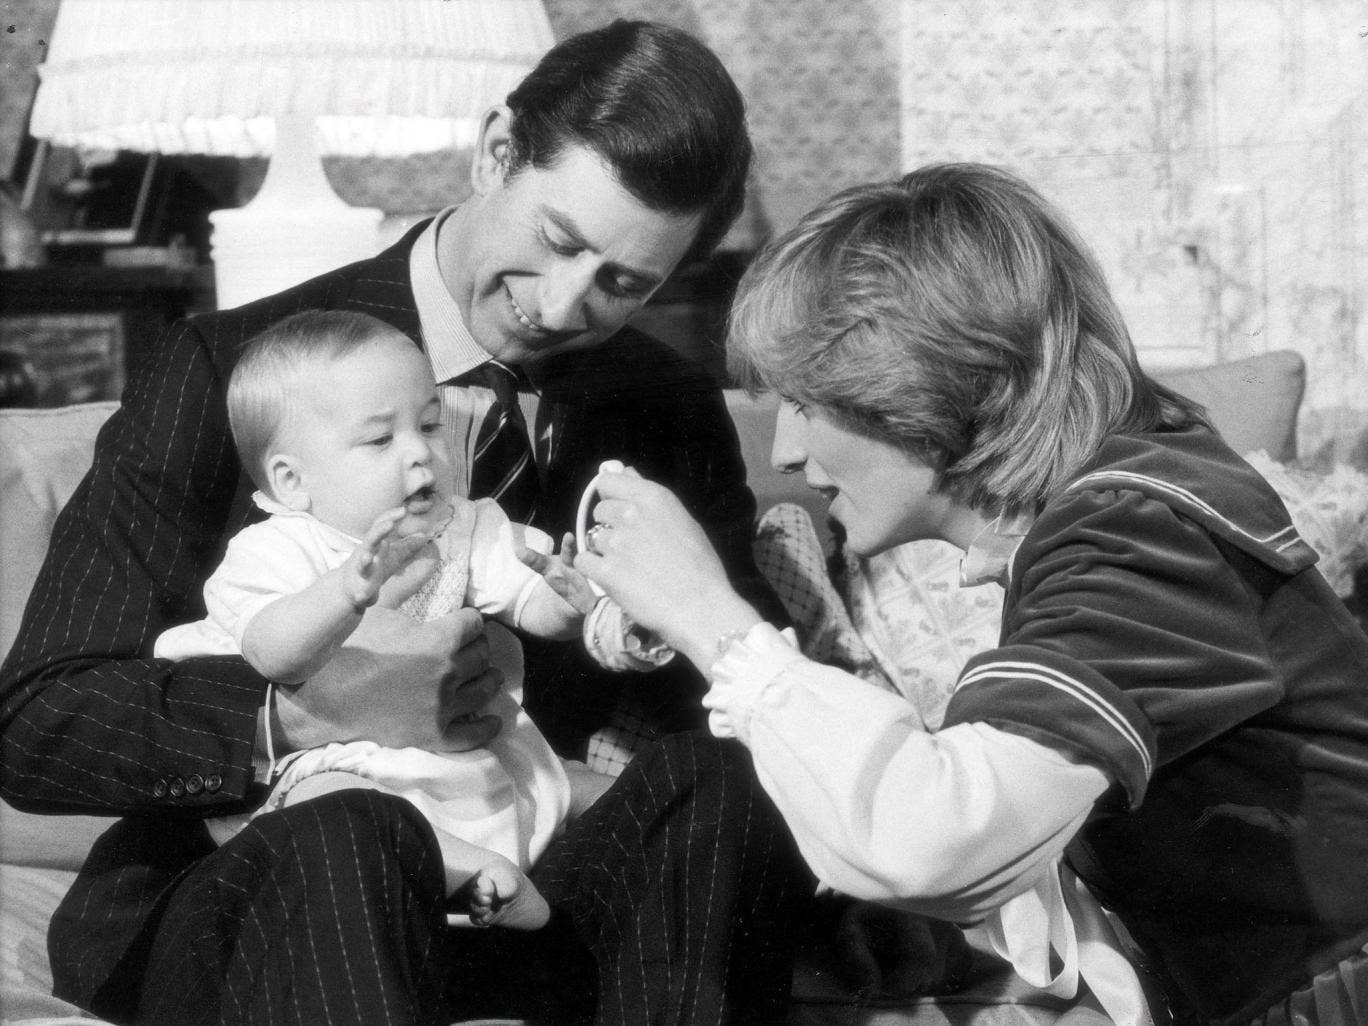 William, in 1982, photographed with his mother and father at Kensington Palace